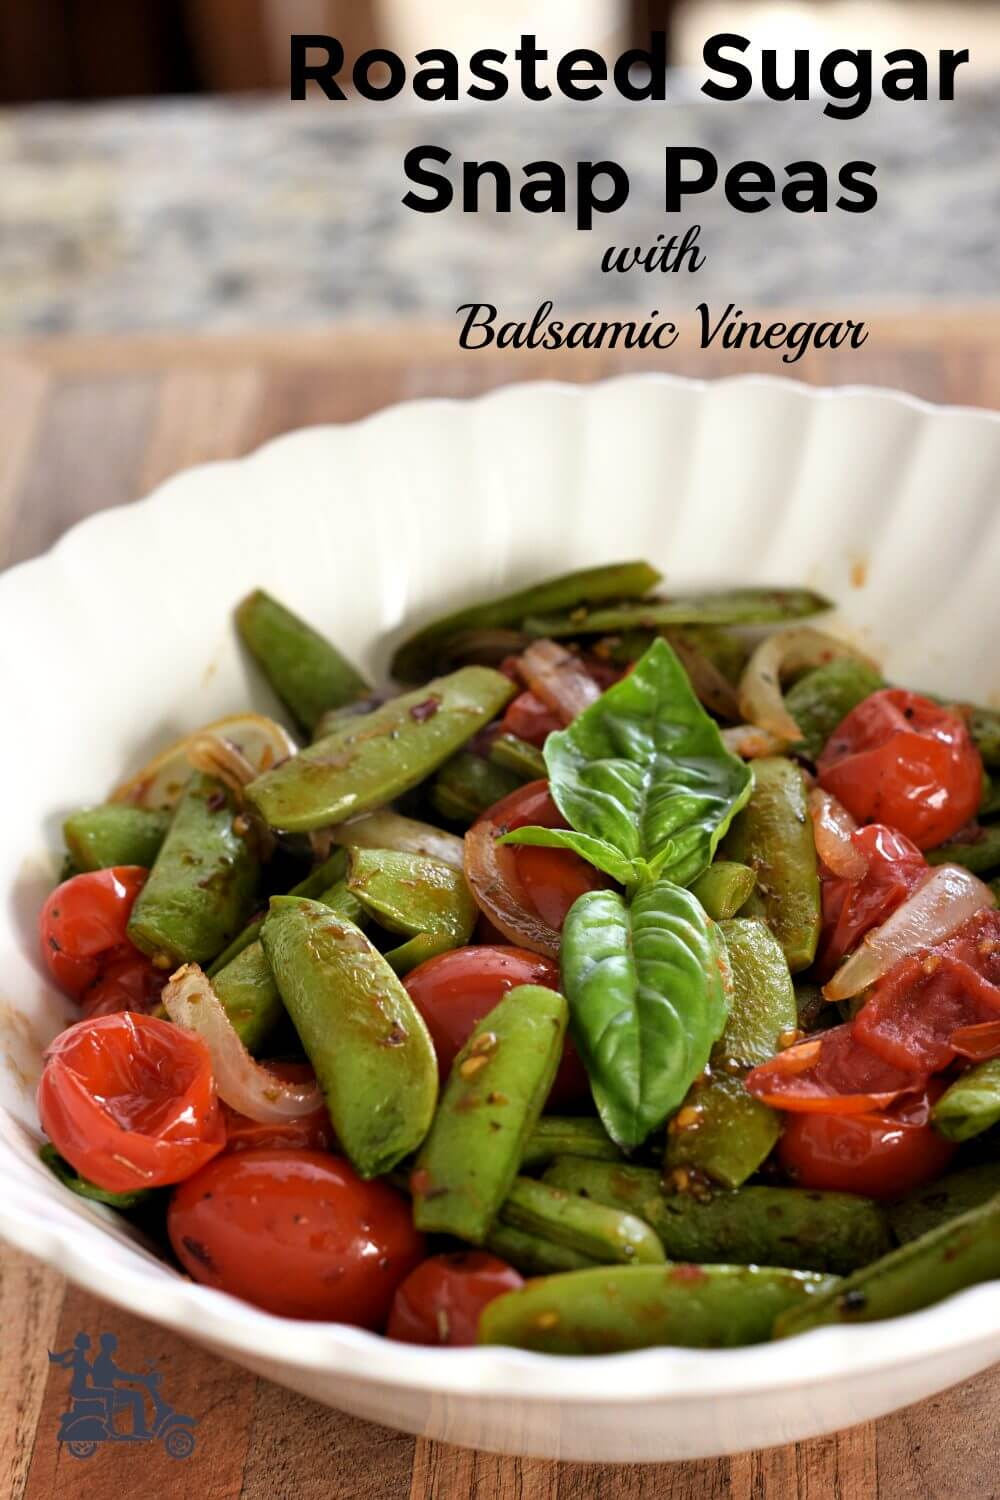 Sweet sugar snap peas, onions and grape tomatoes roast with spicy red pepper flakes and Italian seasoning. The quick vegetable side finishes with a touch of balsamic vinegar to balance the sweetness with a touch of tang. A company worthy vegetable that is easy to throw together.